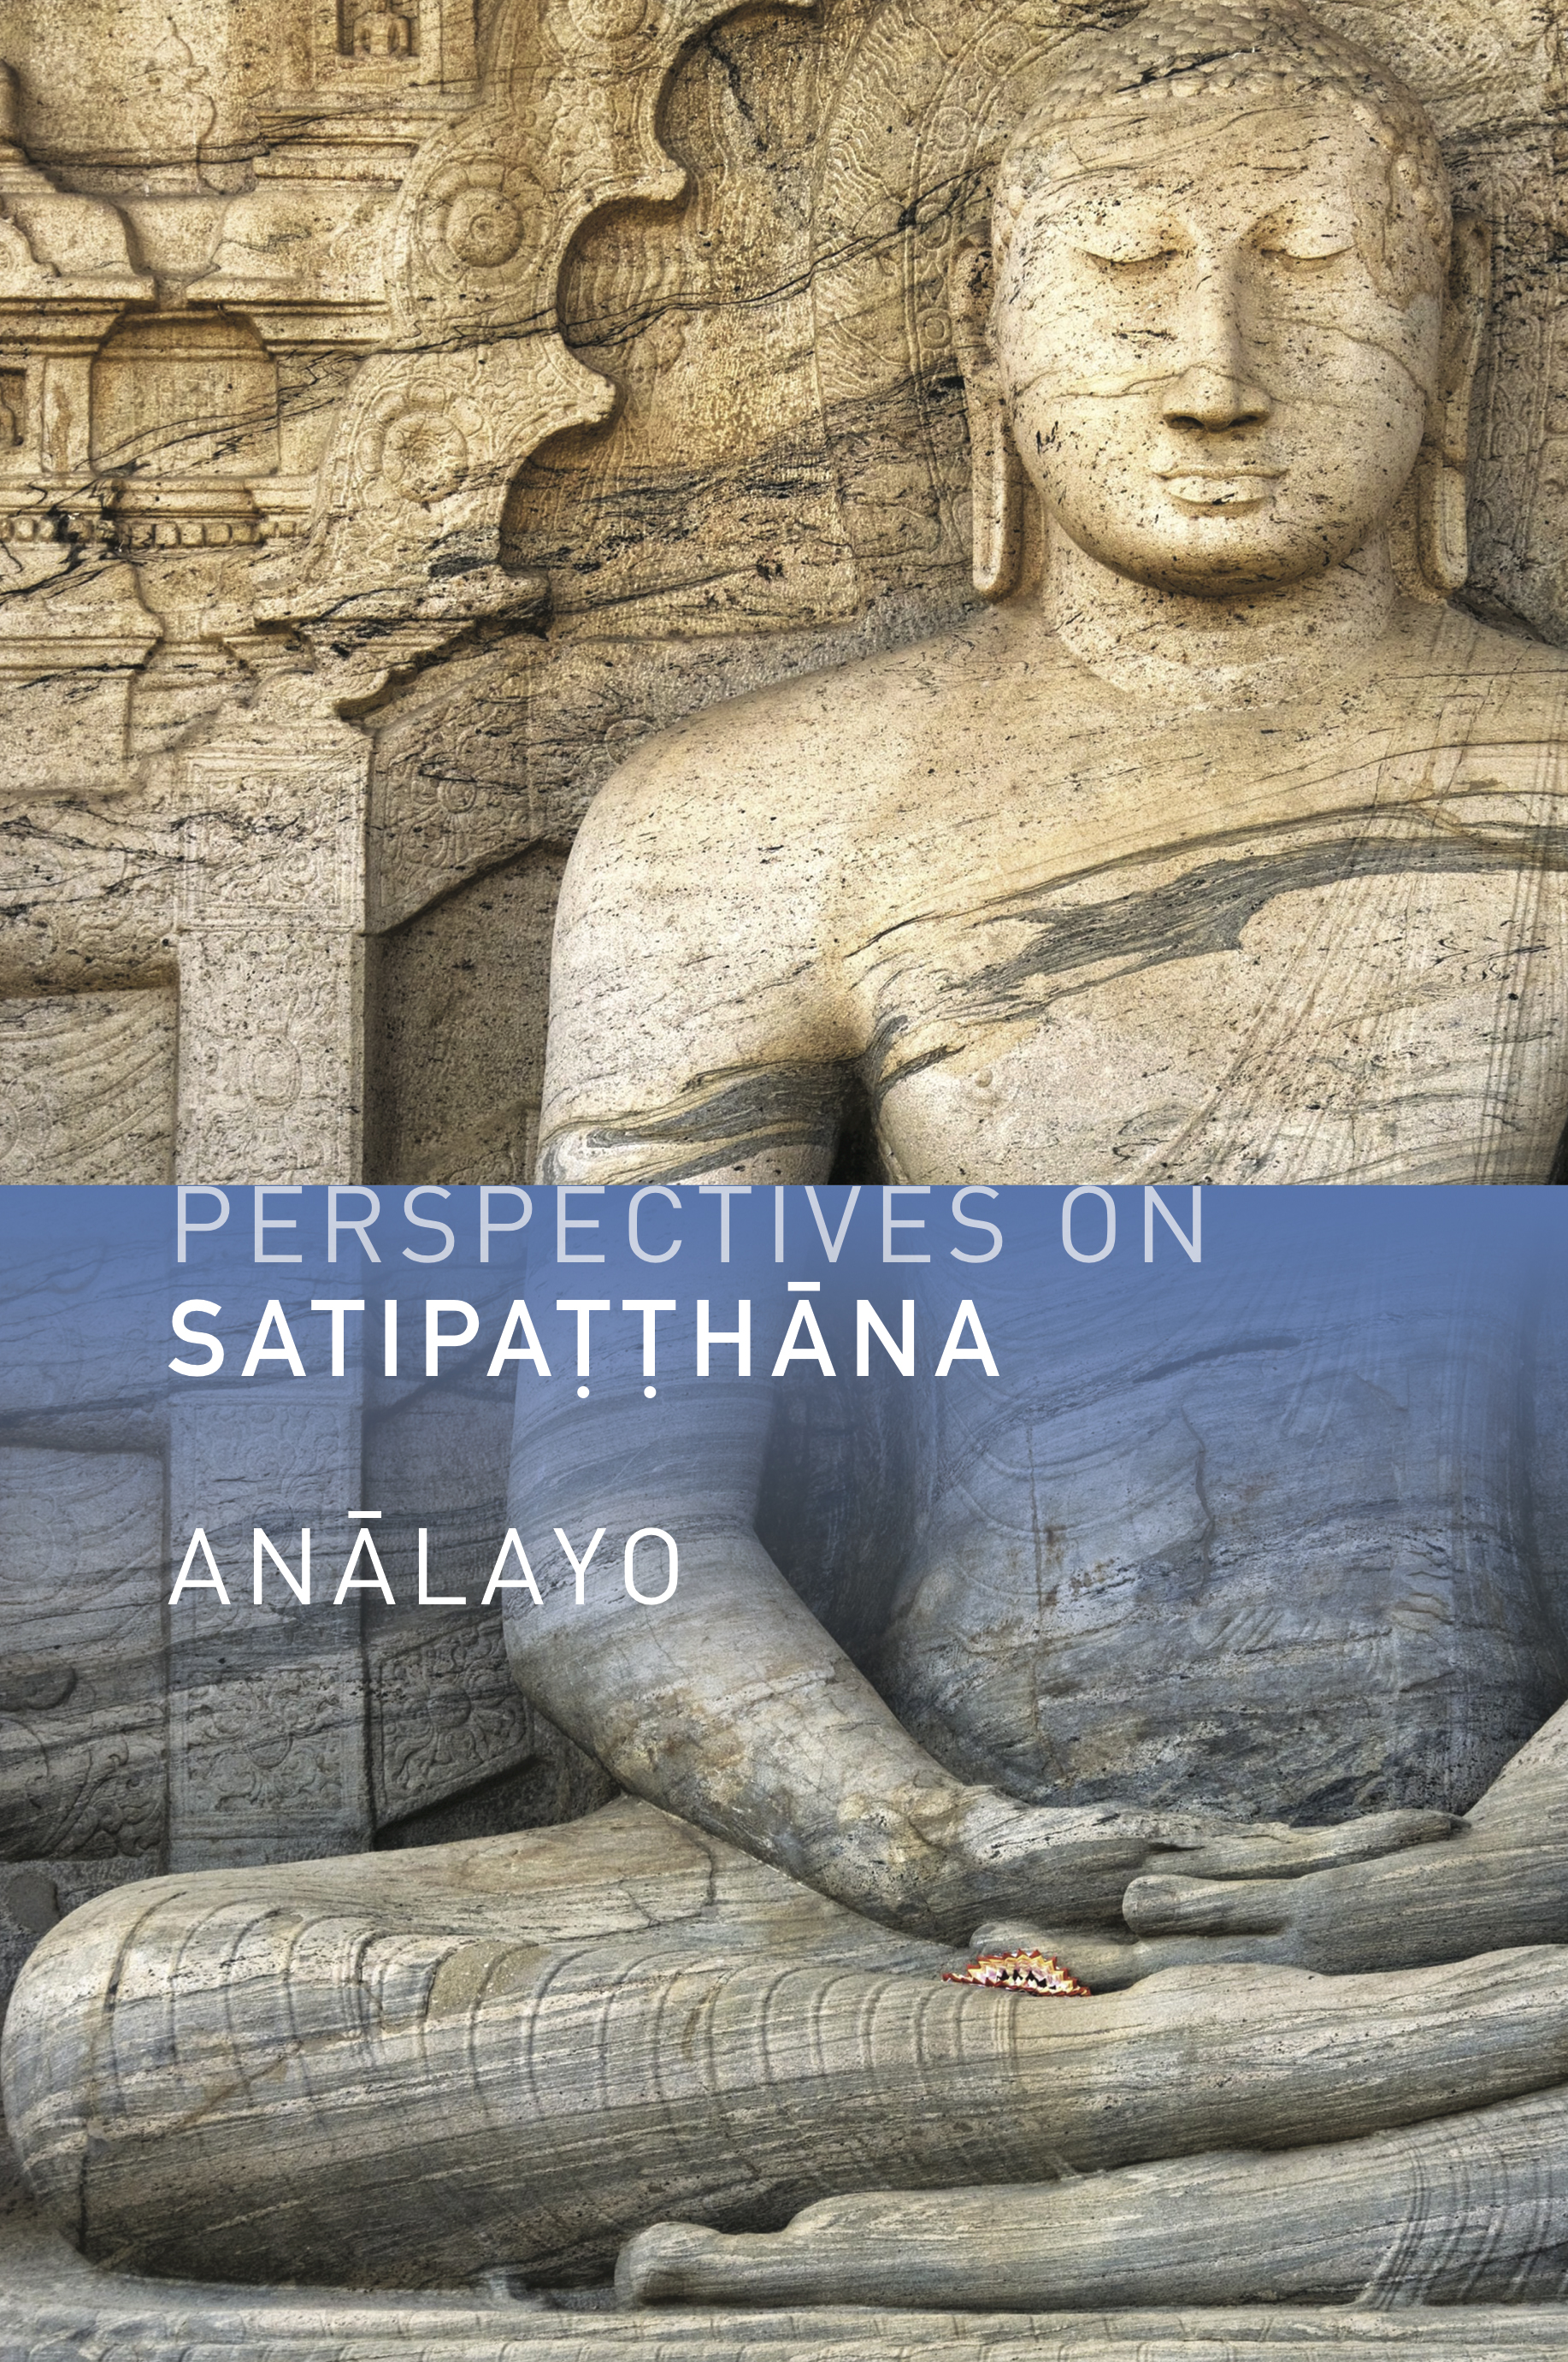 Anālayo on his new book, Perspectives on Satipatthana